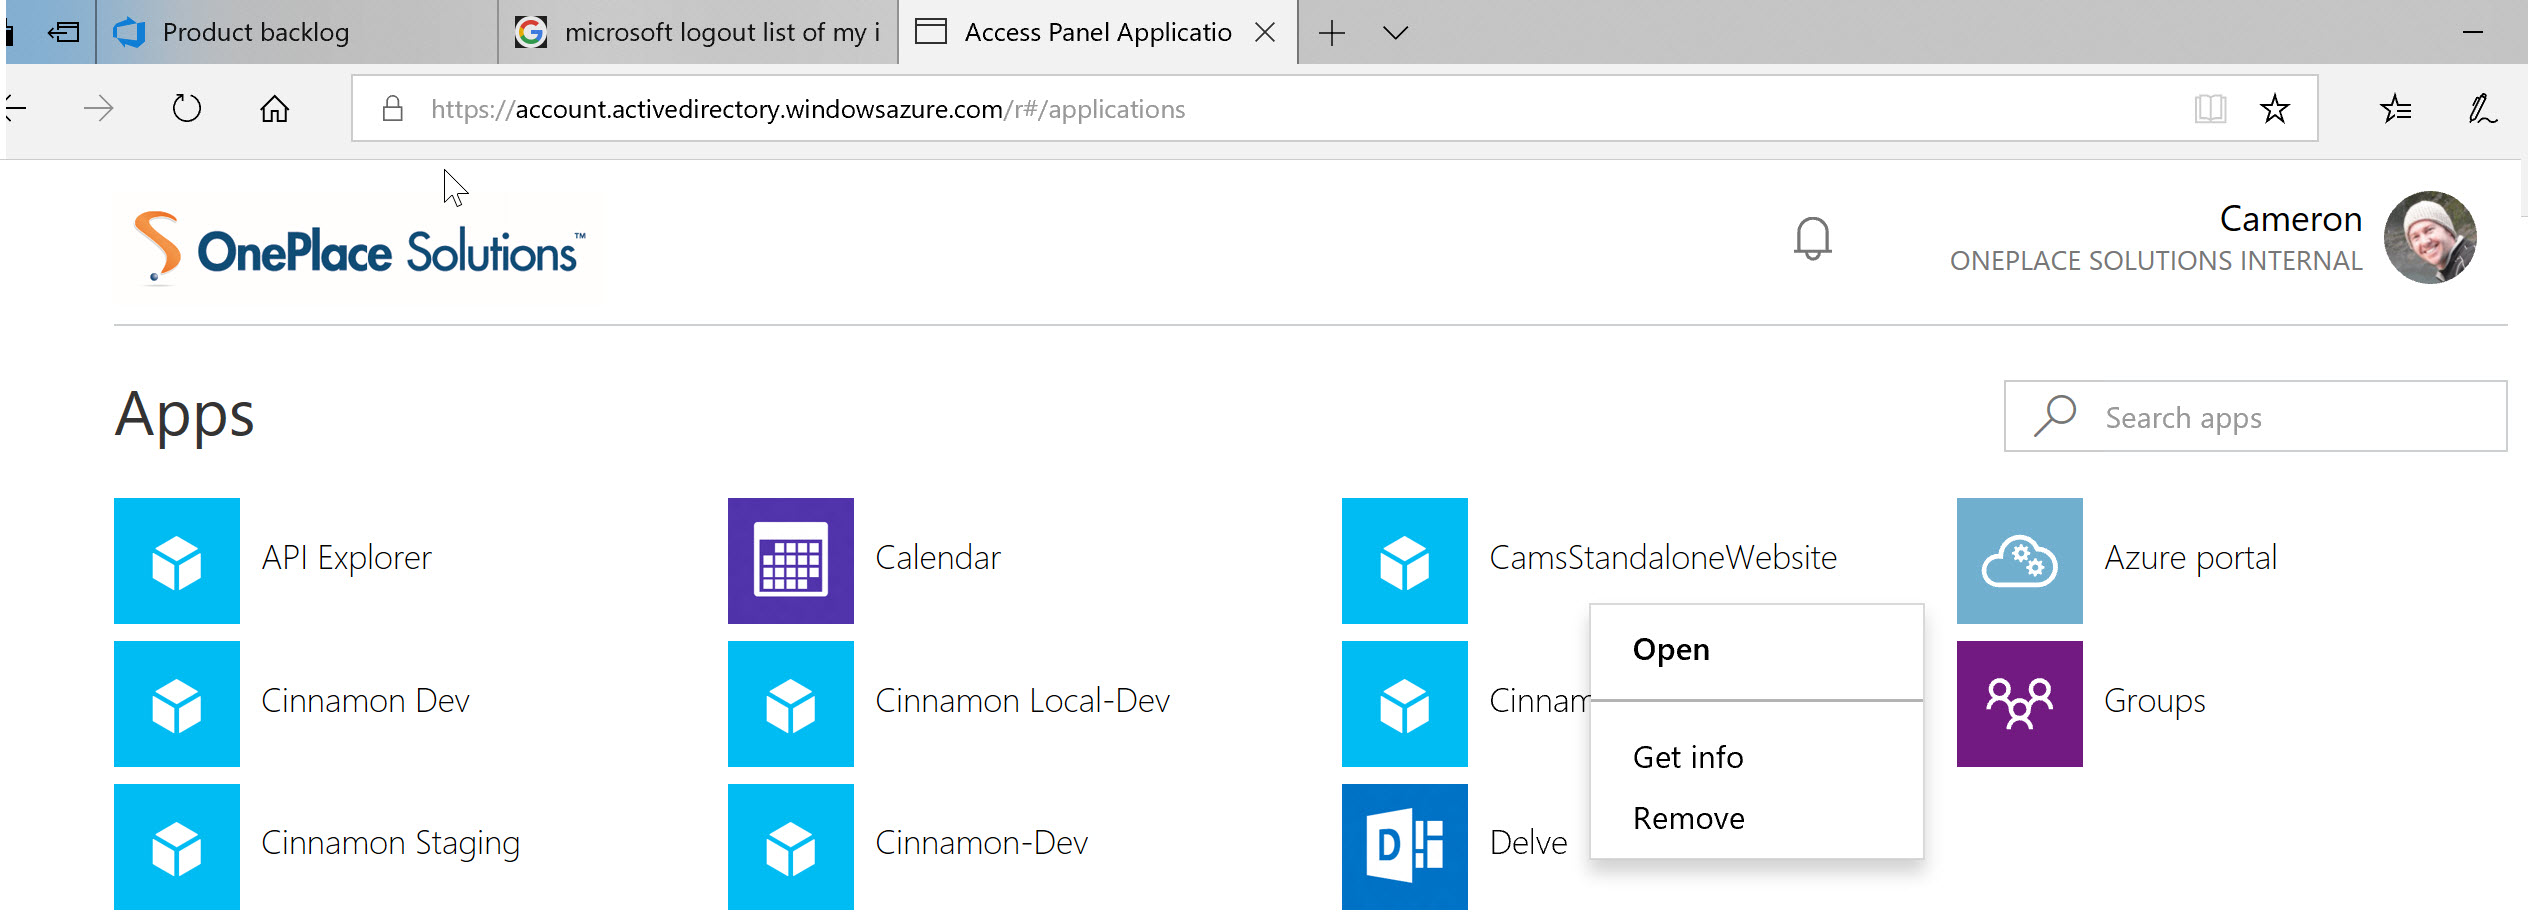 View My Office 365 Apps (add-ins) and remove consent